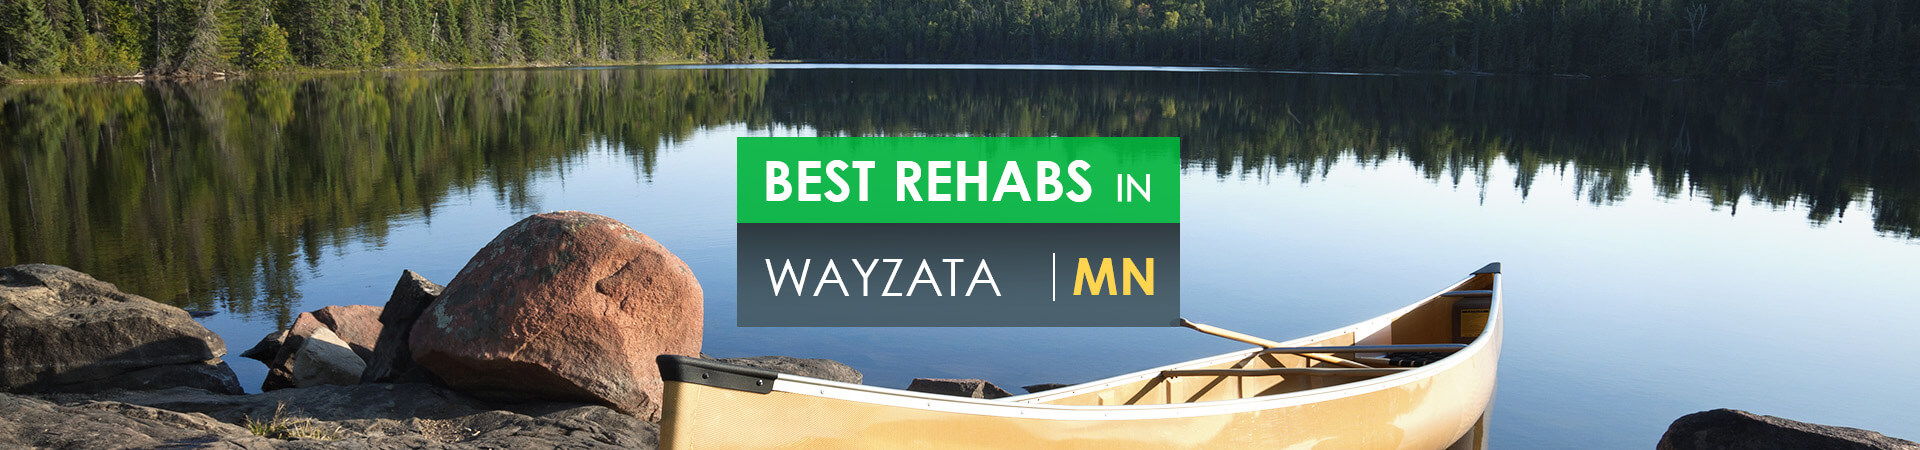 Best rehabs in Wayzata, MN